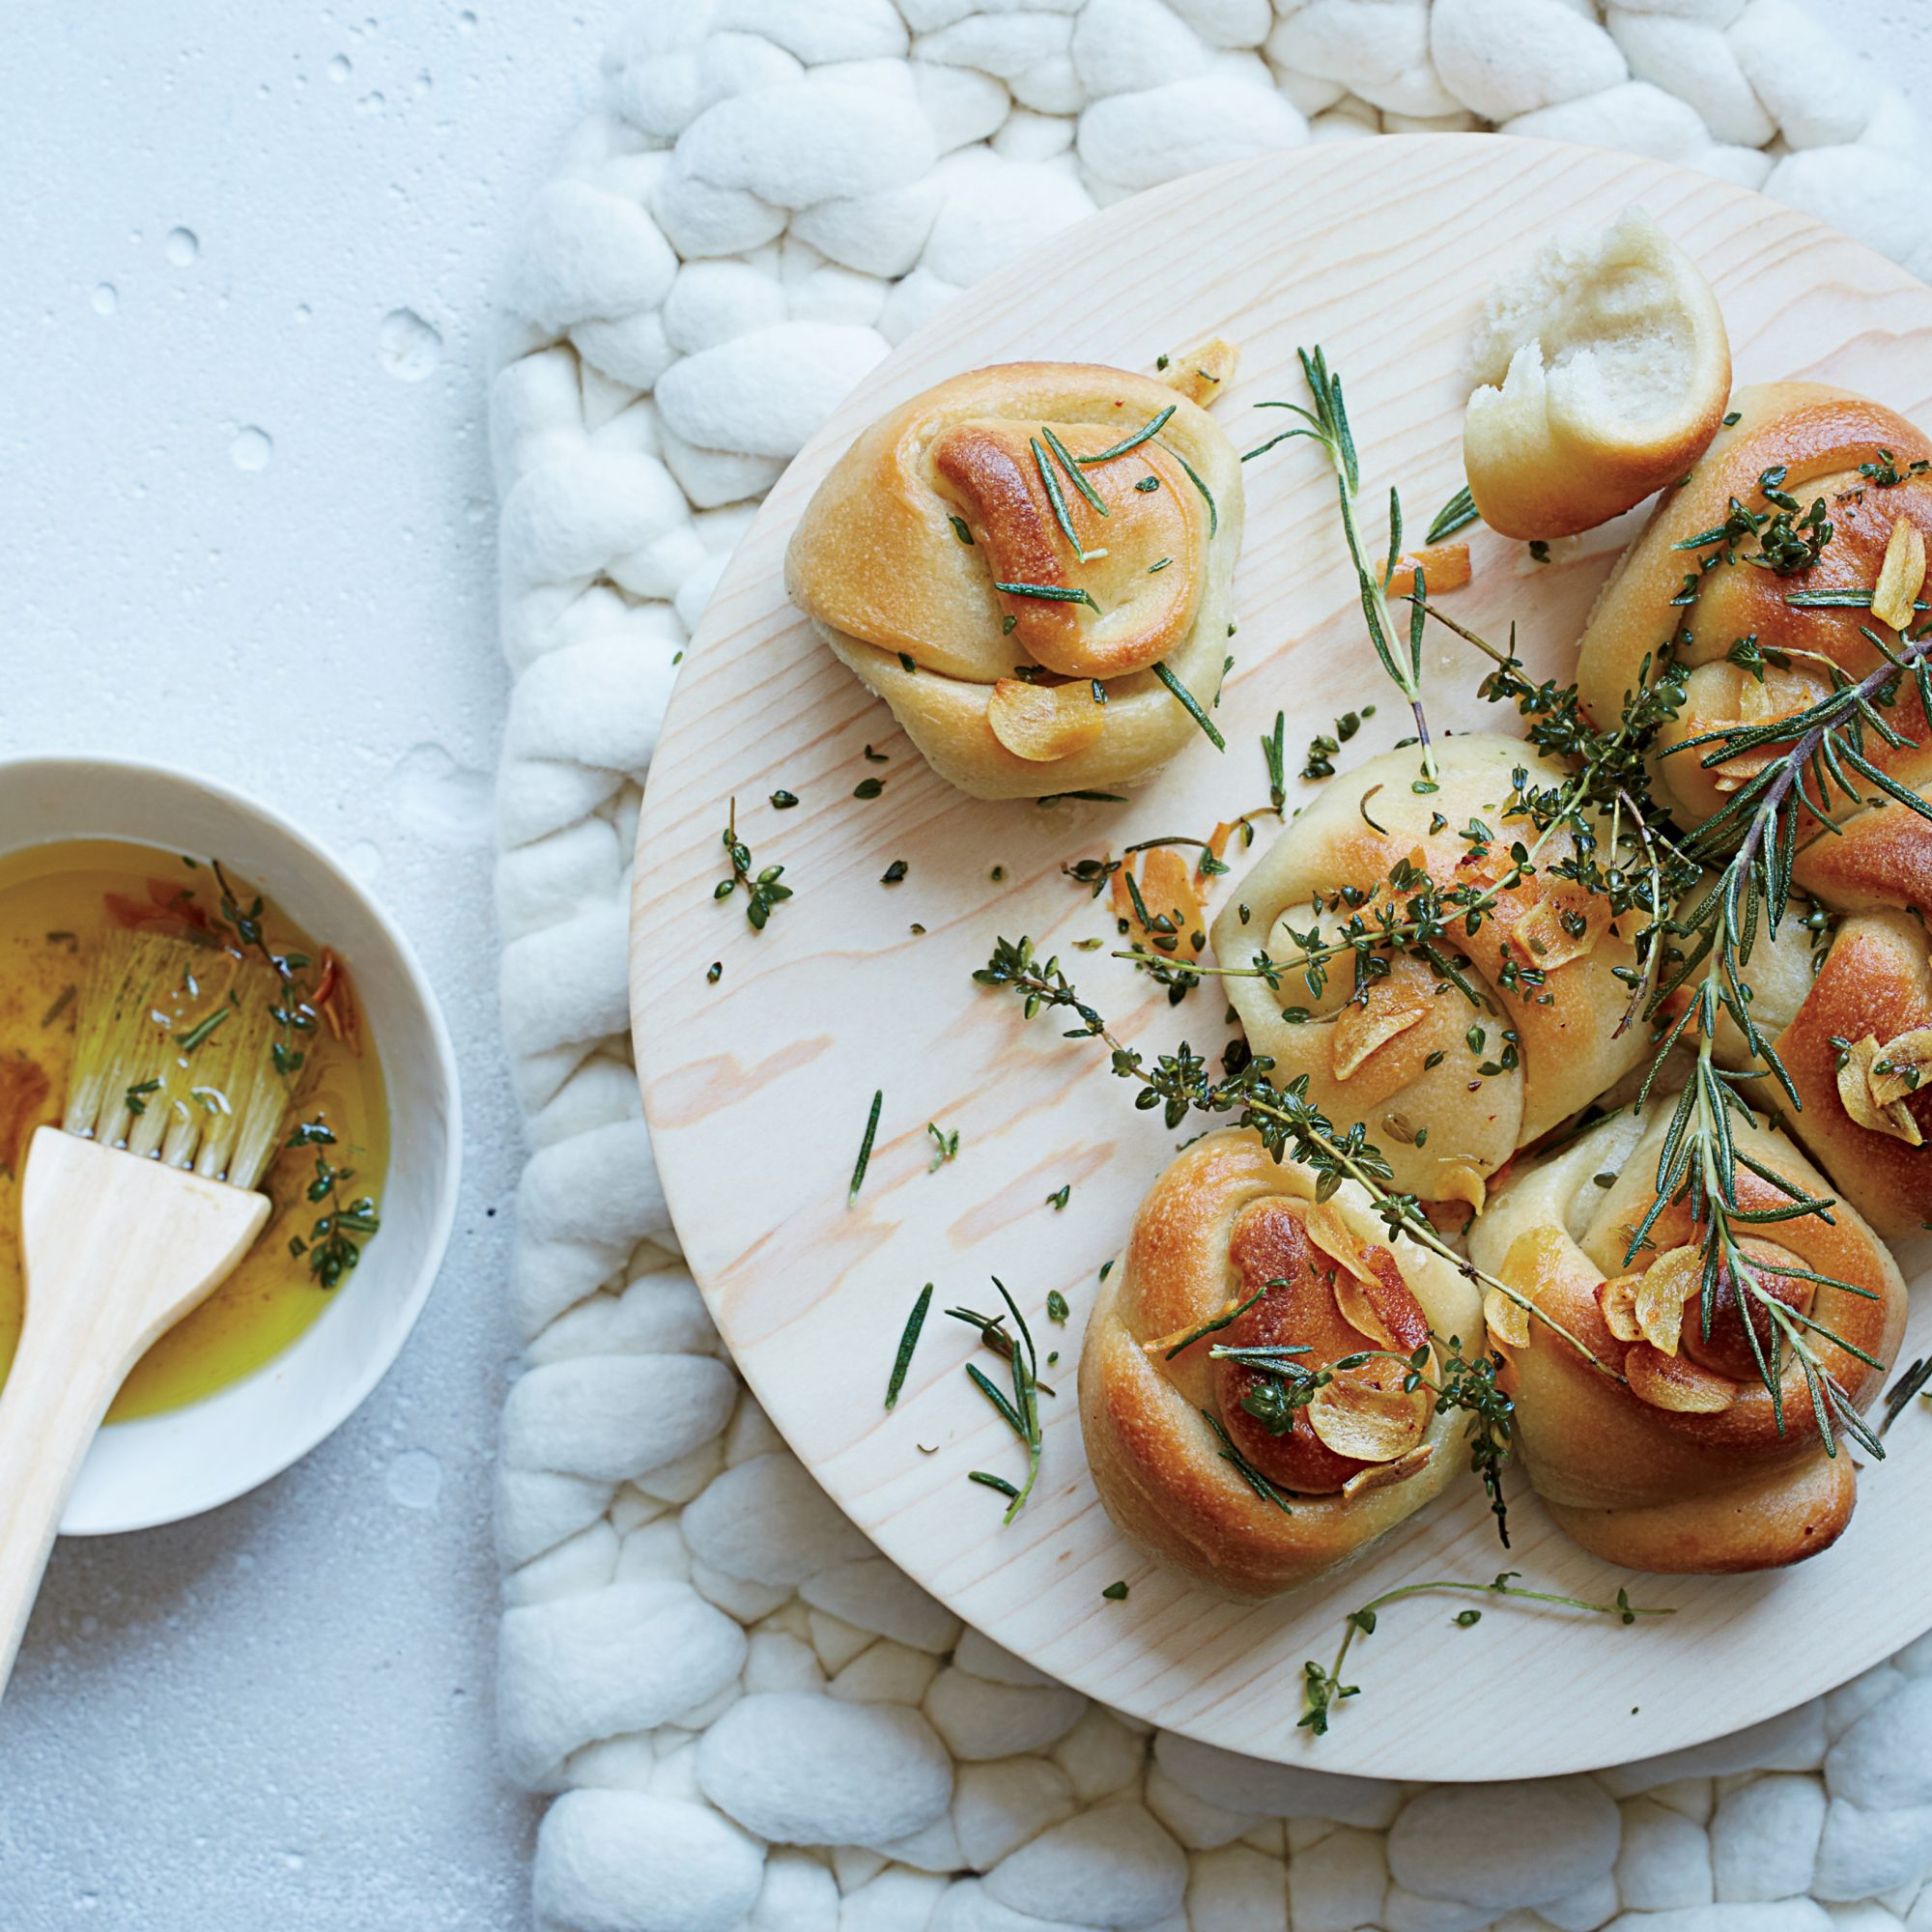 Garlic Knots with Frizzled Herbs